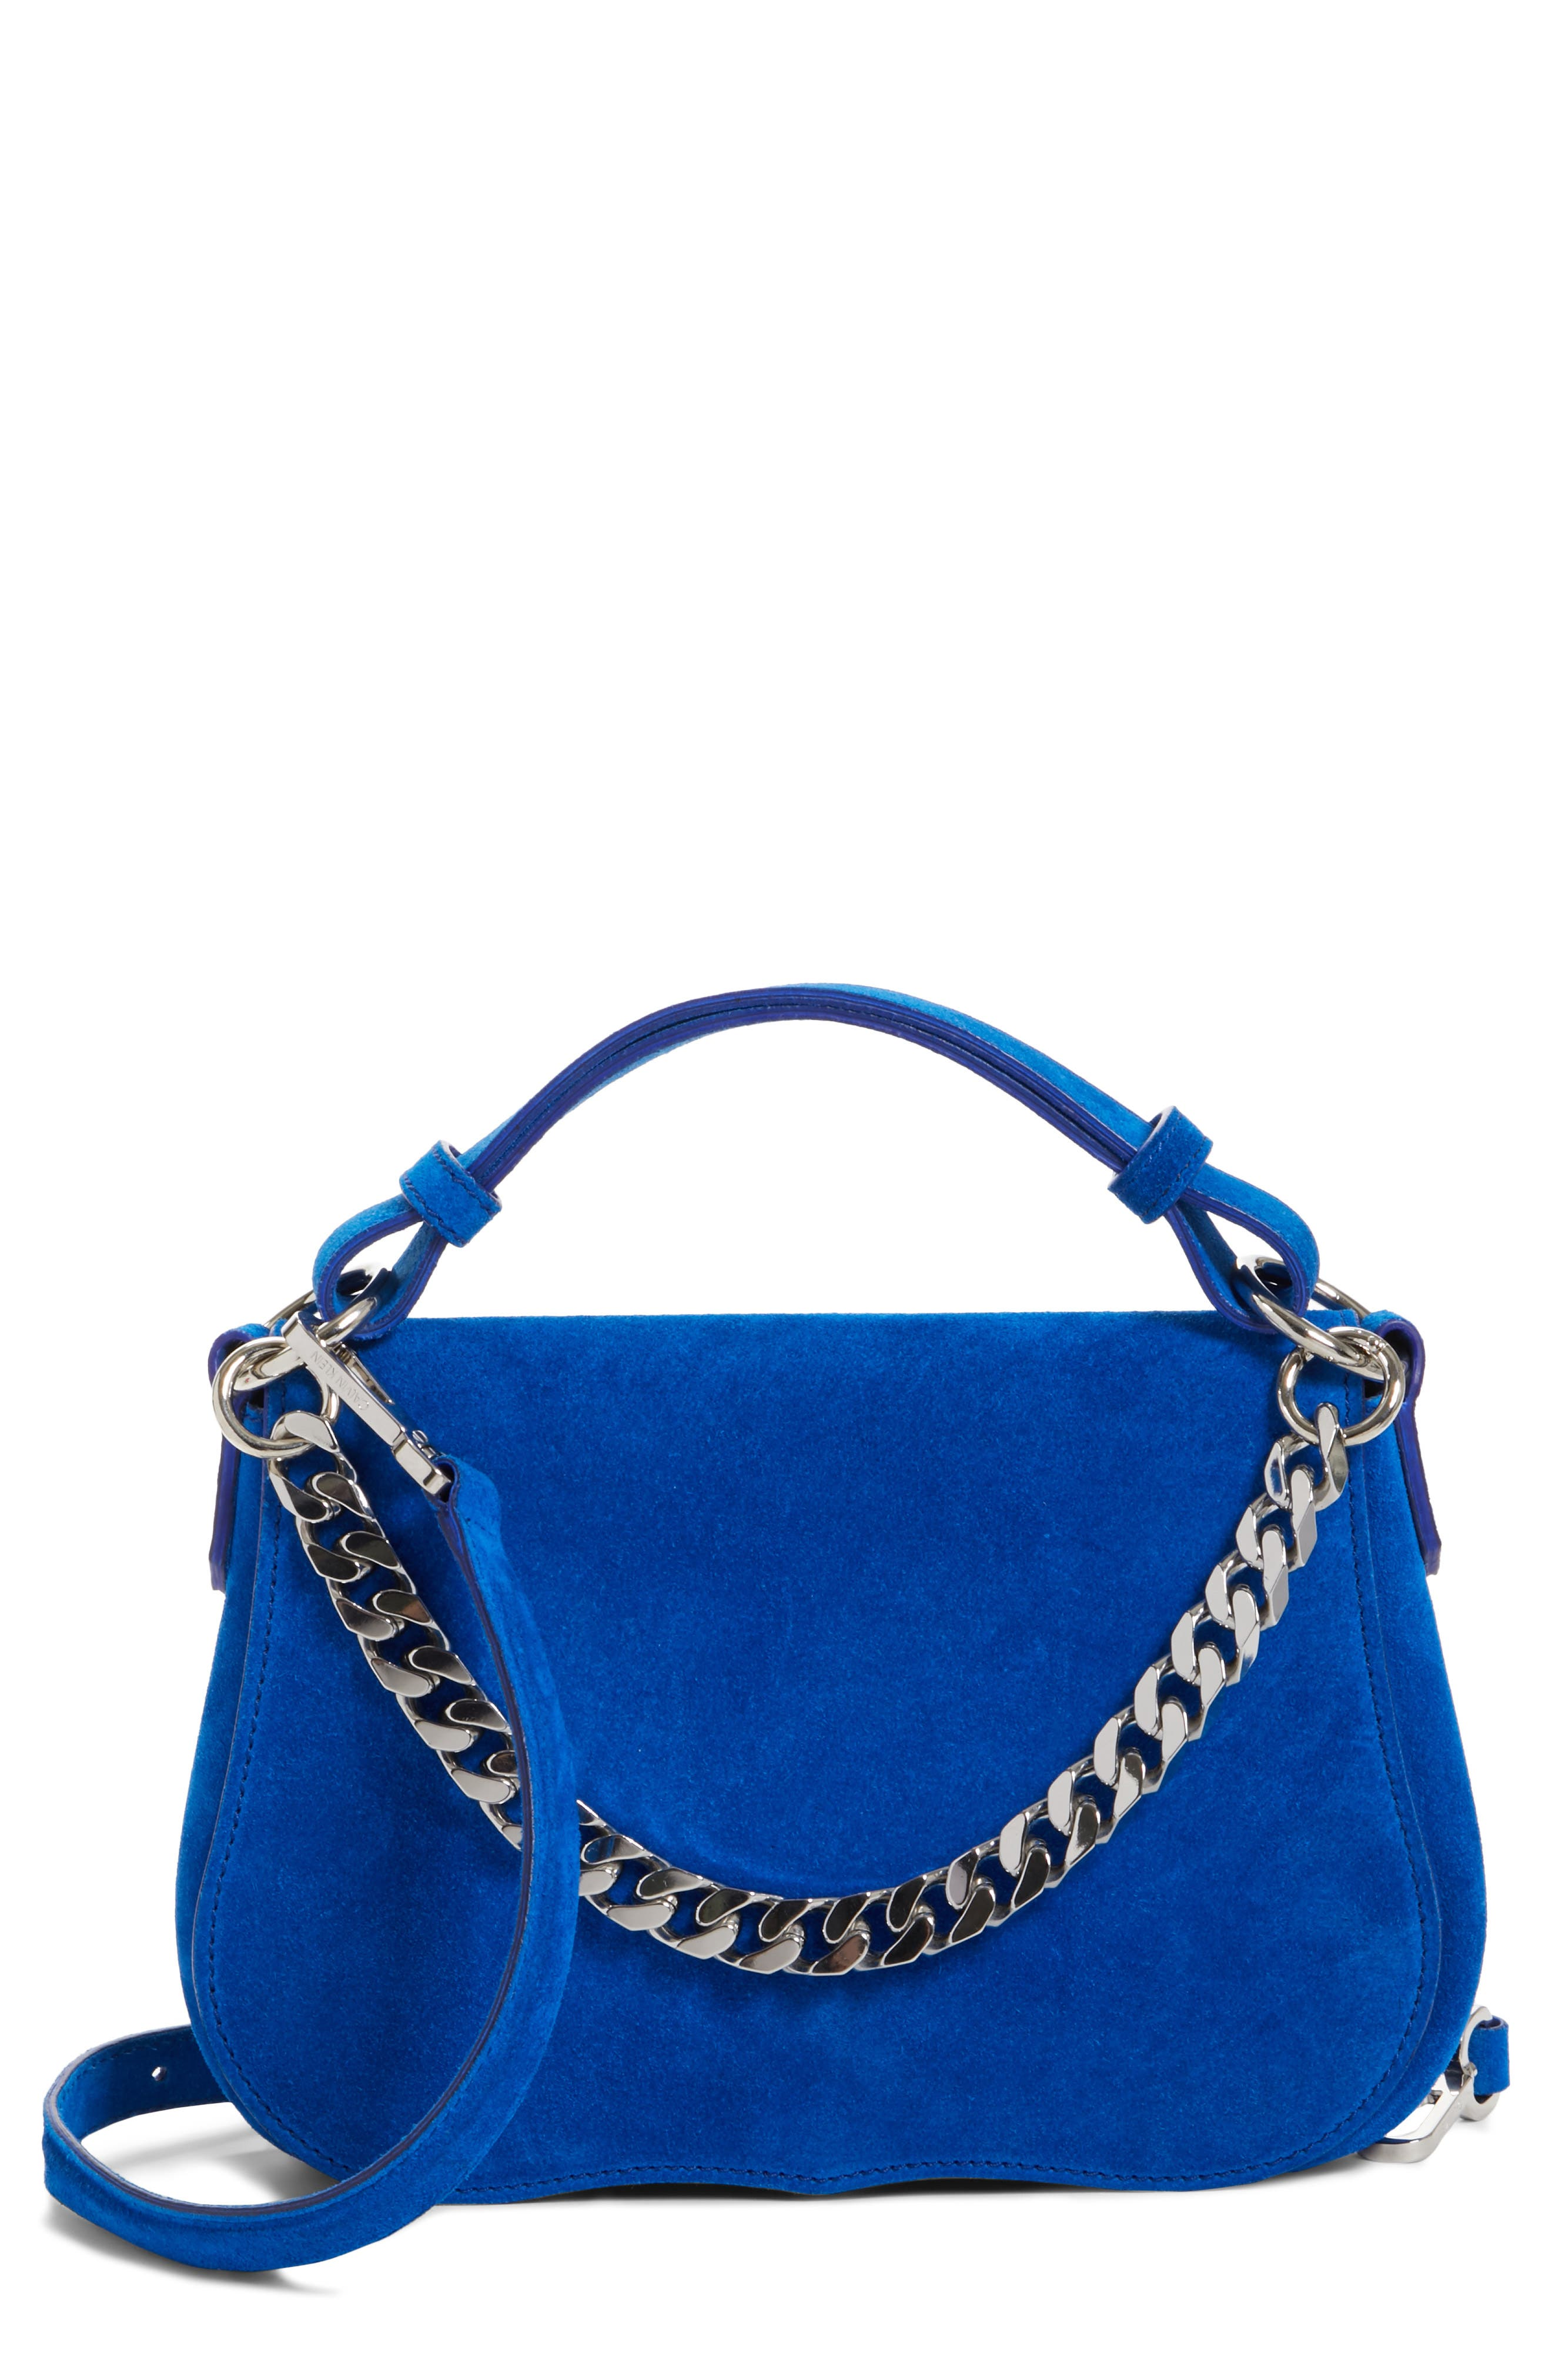 Alternate Image 1 Selected - CALVIN KLEIN 205W39NYC Small Suede Shoulder Bag